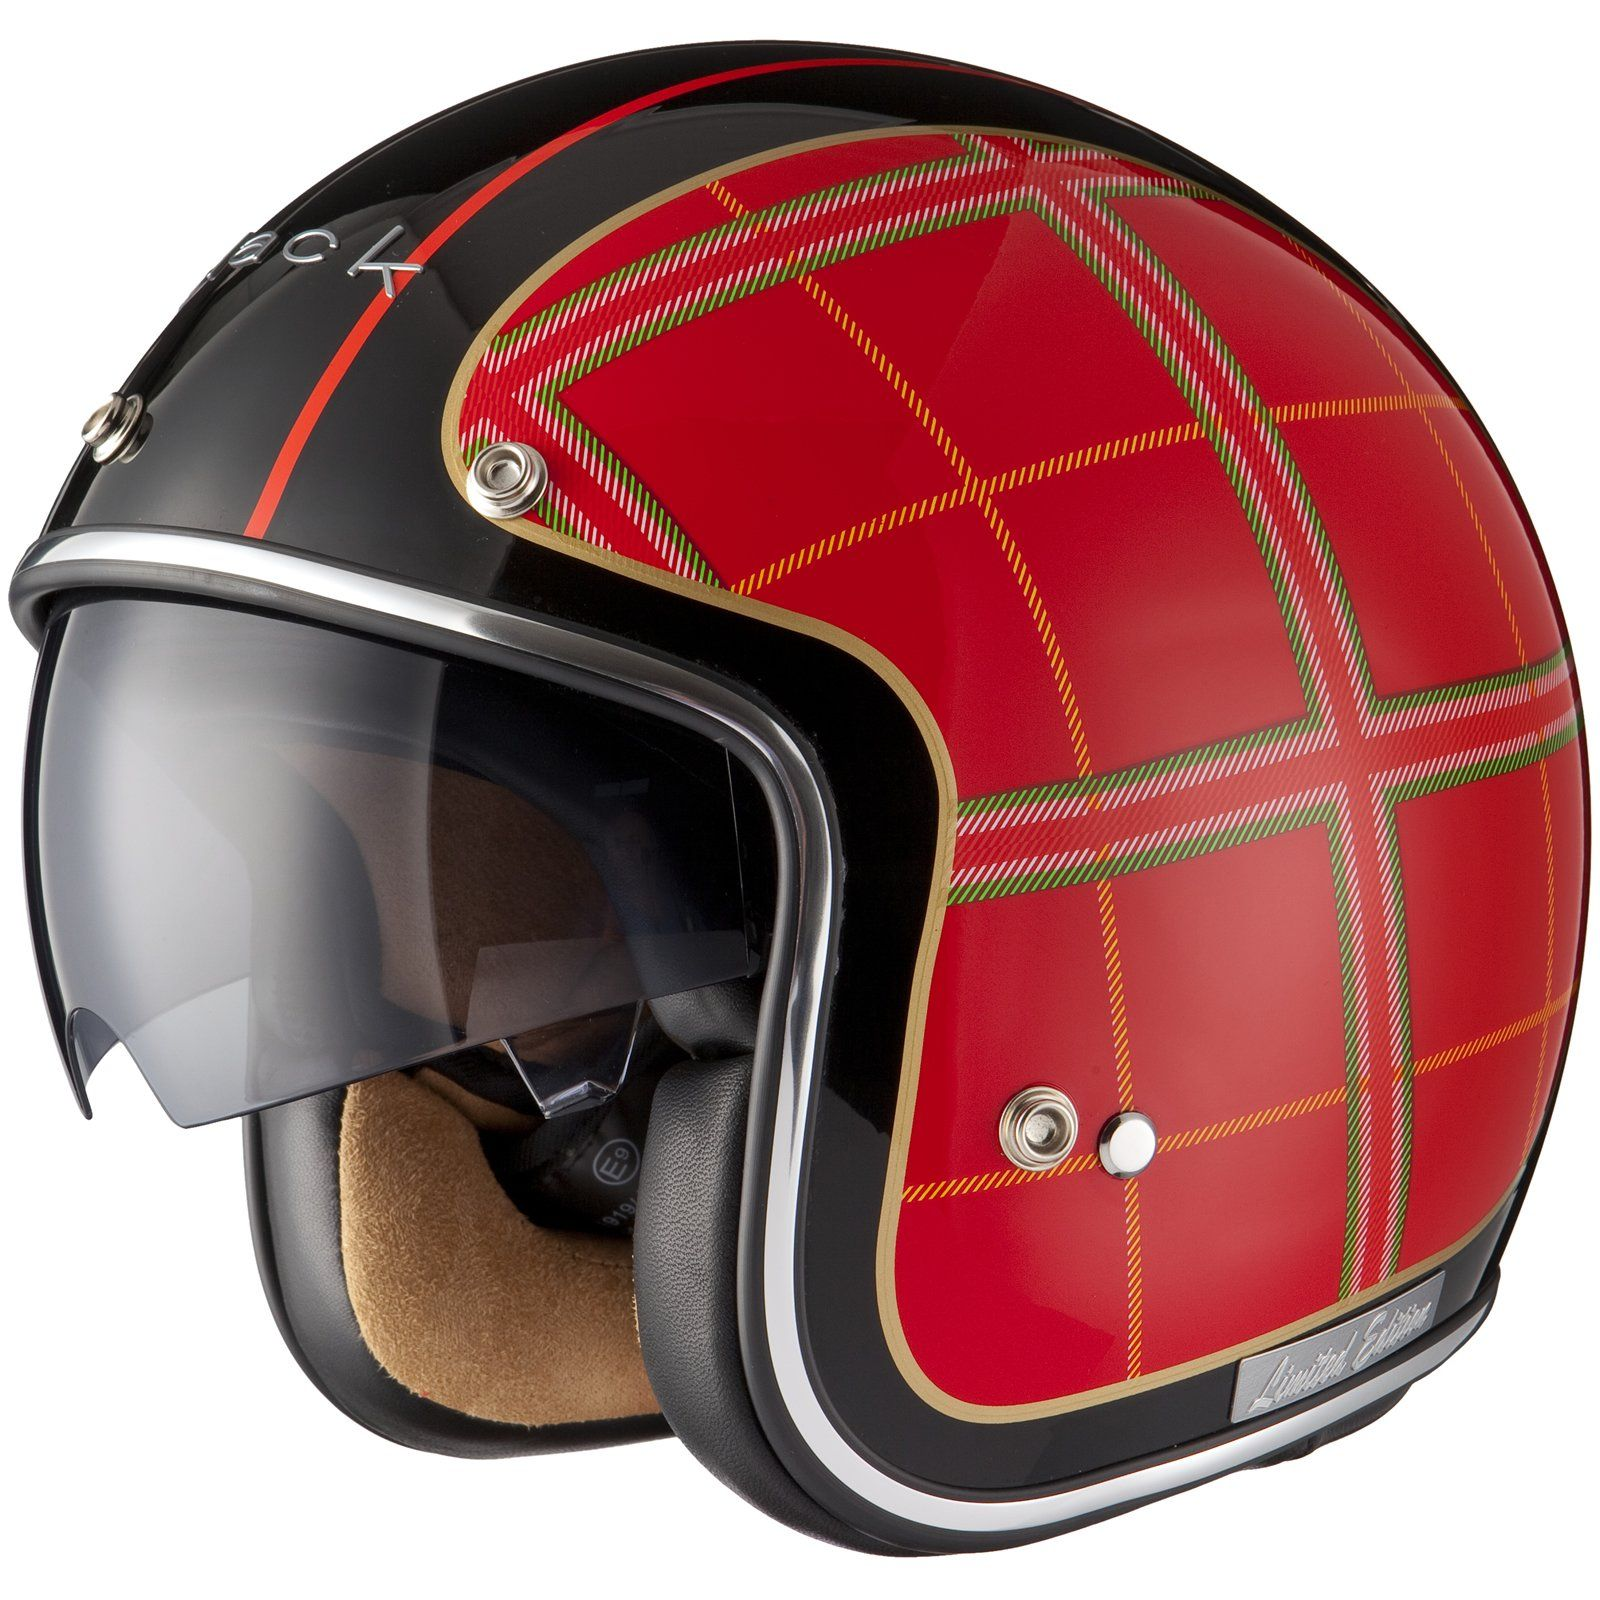 Black Highland édition Limitée Casque Jet De Moto Ou Scooter Amazon